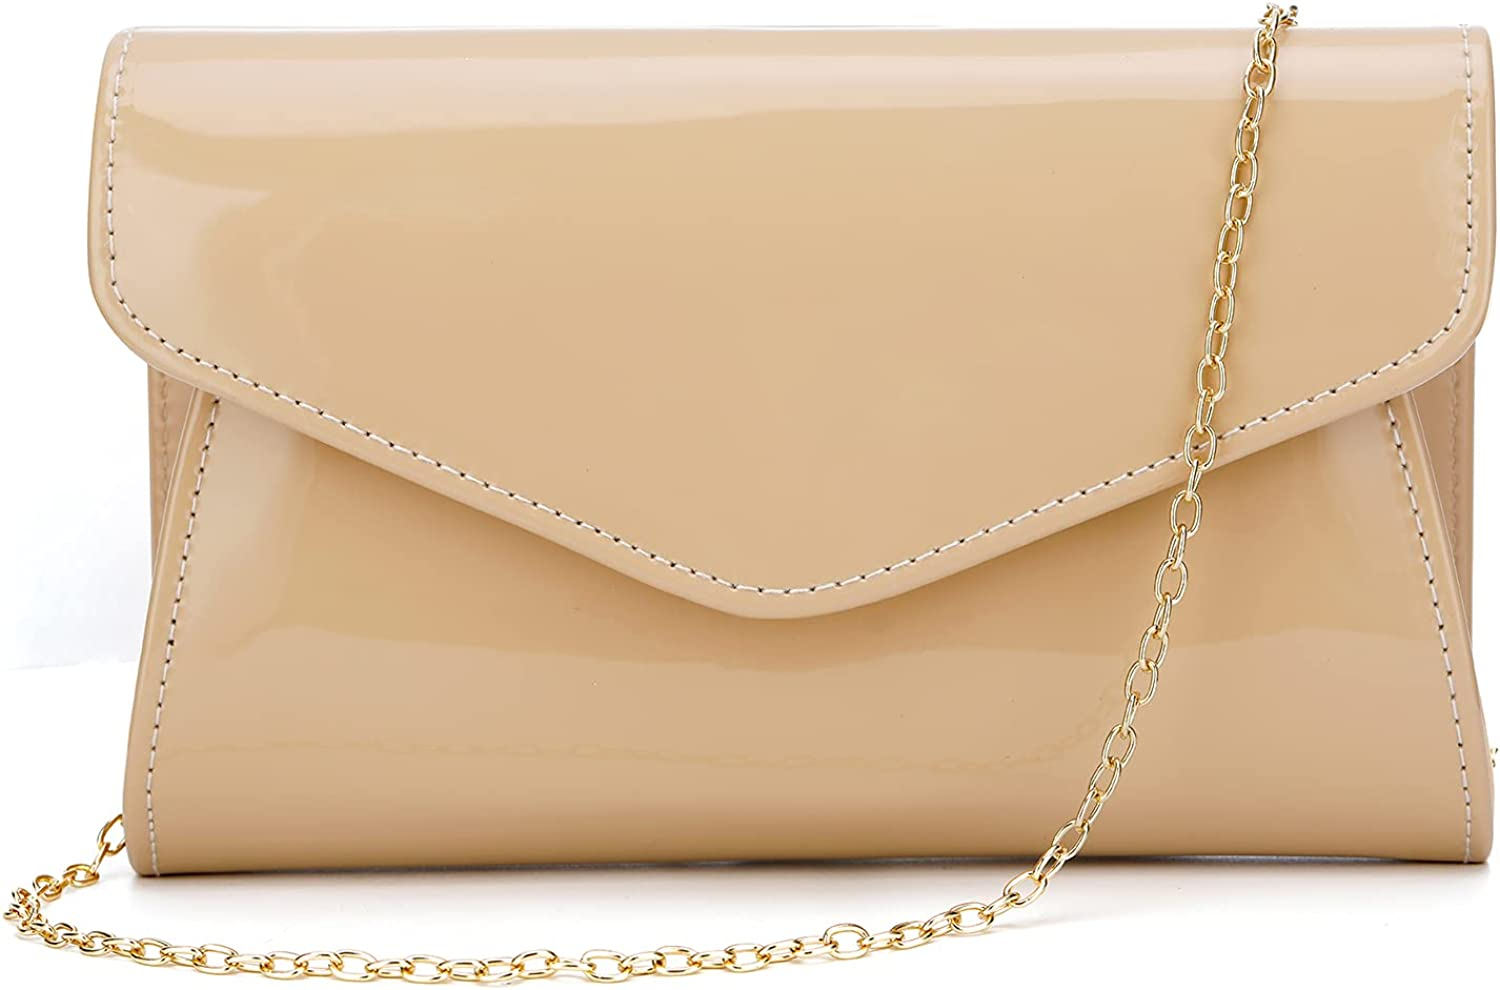 ZIUMUDY Patent Inventory cleanup selling sale Leather Evening Bags Shoulder Envelope Clutches Cheap mail order sales C